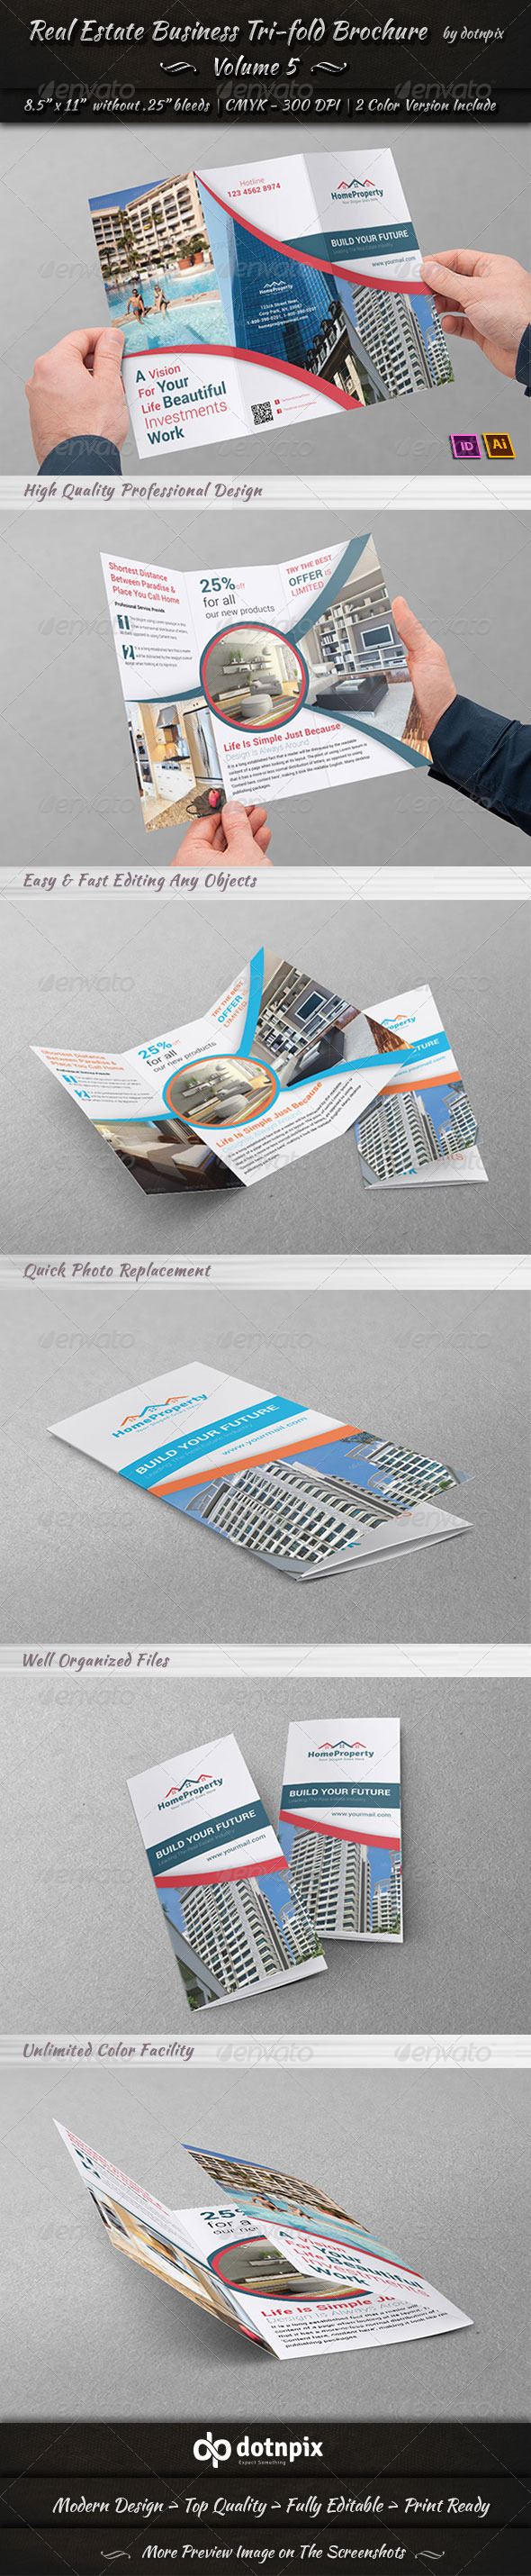 GraphicRiver Real Estate Business TriFold Brochure Volume 5 6685995